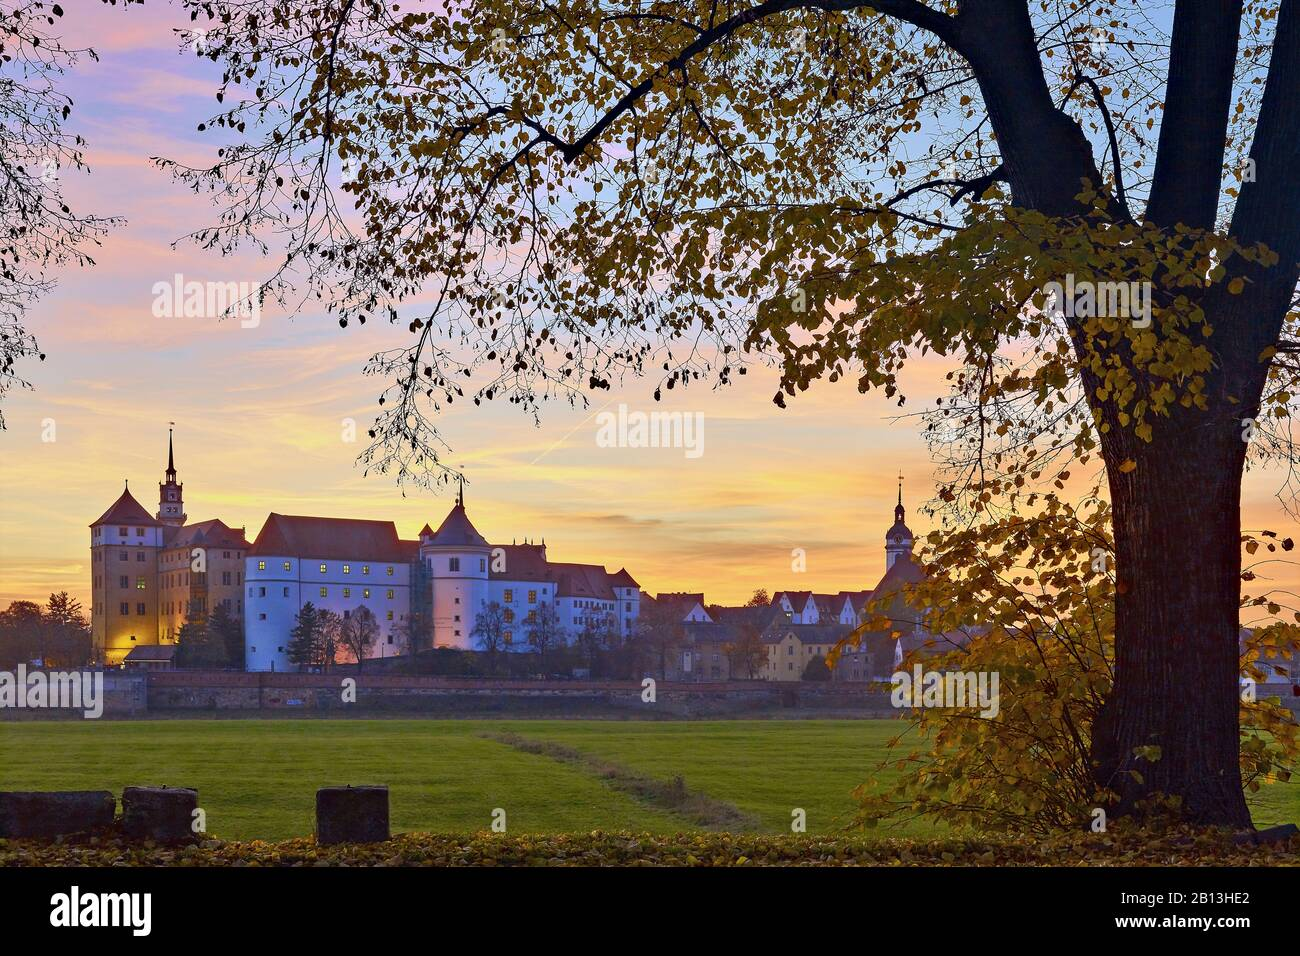 Castle Hartenfels on the Elbe in Torgau,Saxony,Germany Stock Photo